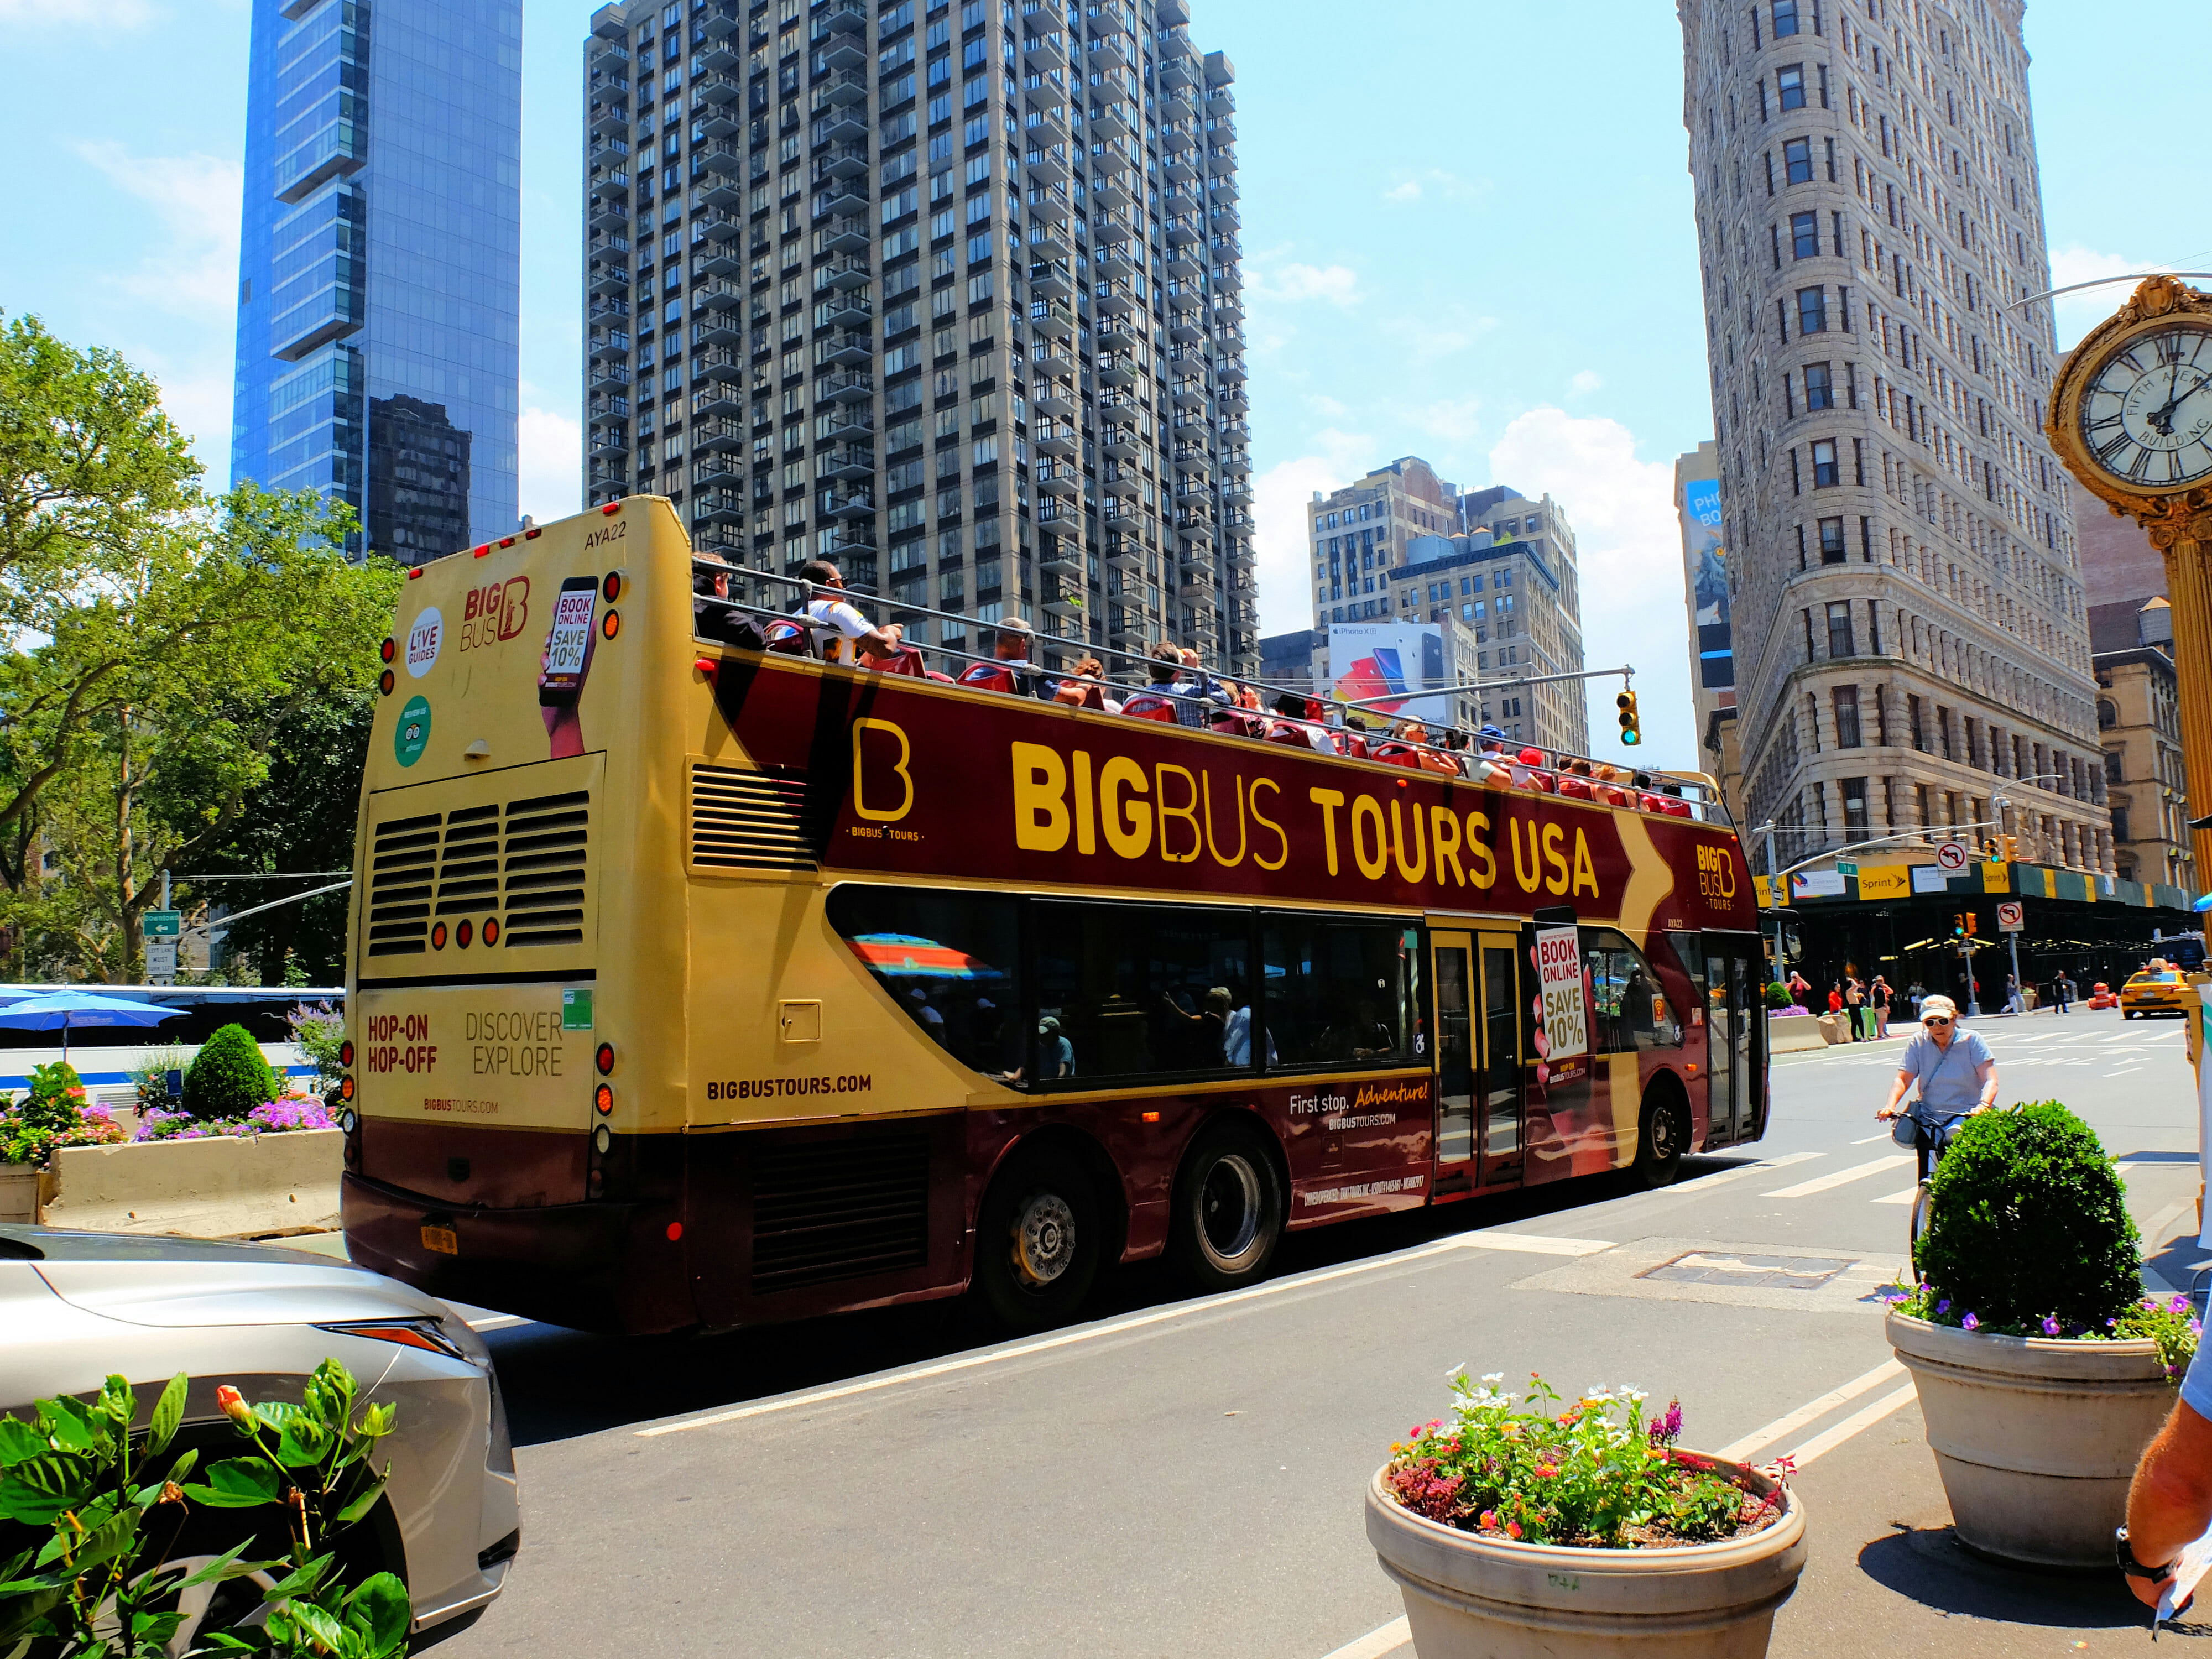 Big Bus Hop on Hop off Bus New York – High Quality Wallpaper